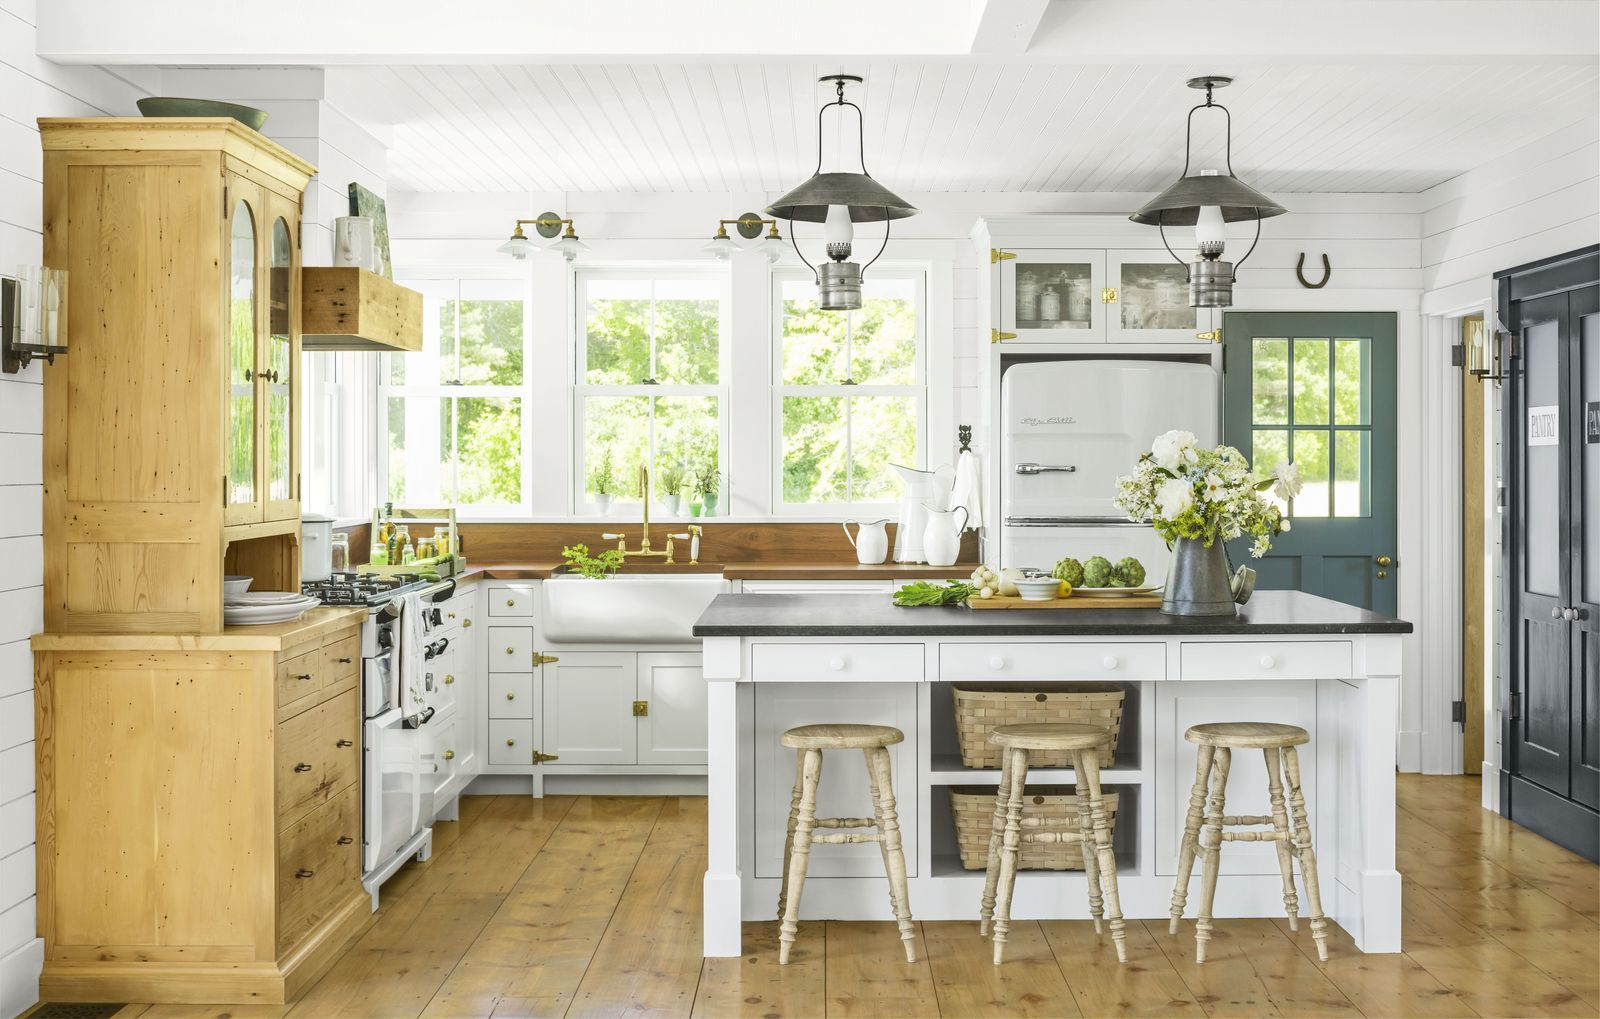 French Country Kitchen Cabinets For Sale 32 Kitchen Trends for 2021 That We Predict Will Be Everywhere